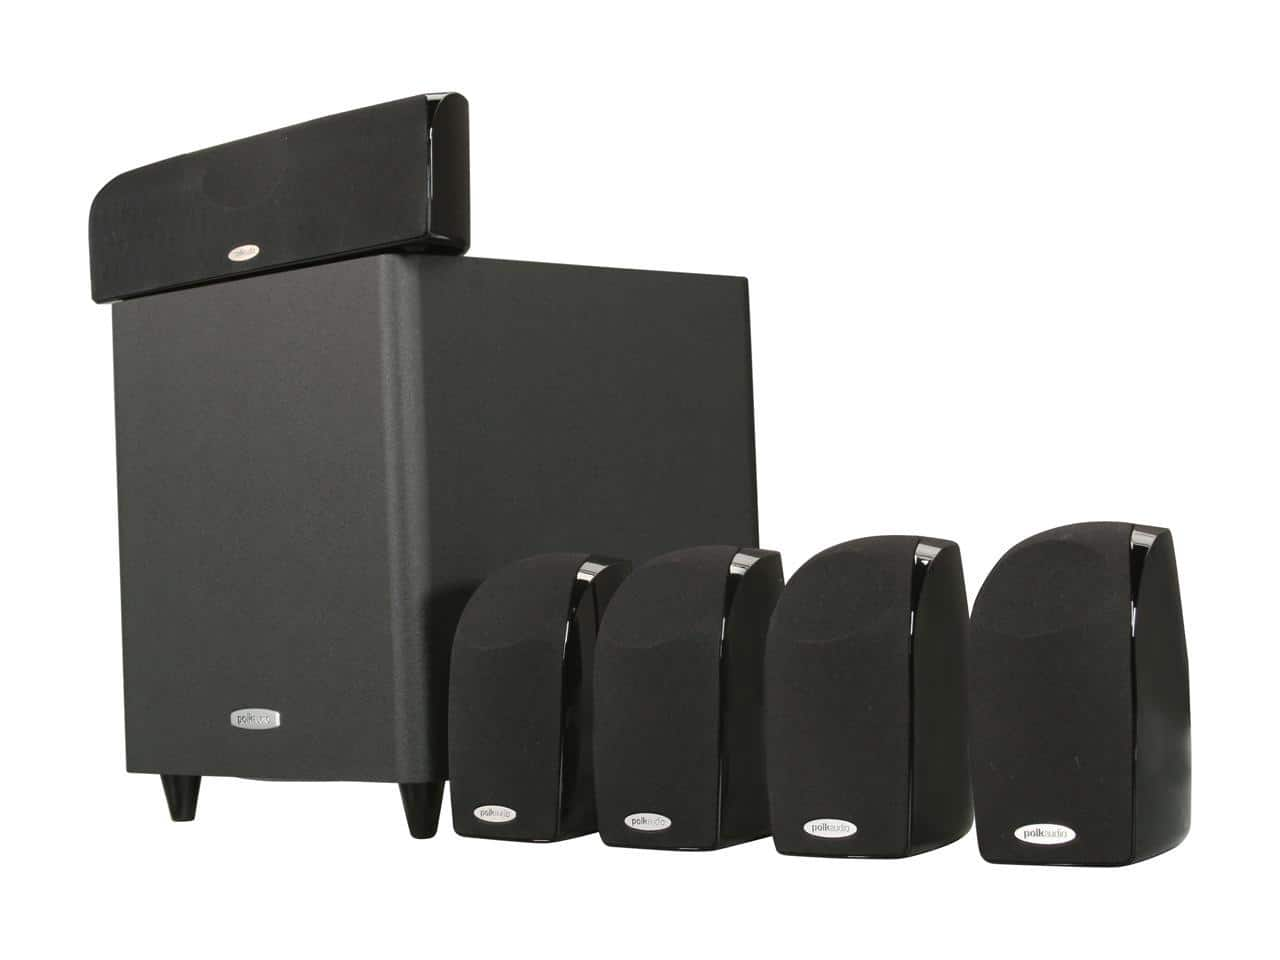 Polk Audio TL1600 5.1 Compact Surround Sound Home Theater System with Powered Subwoofer $179 + FS